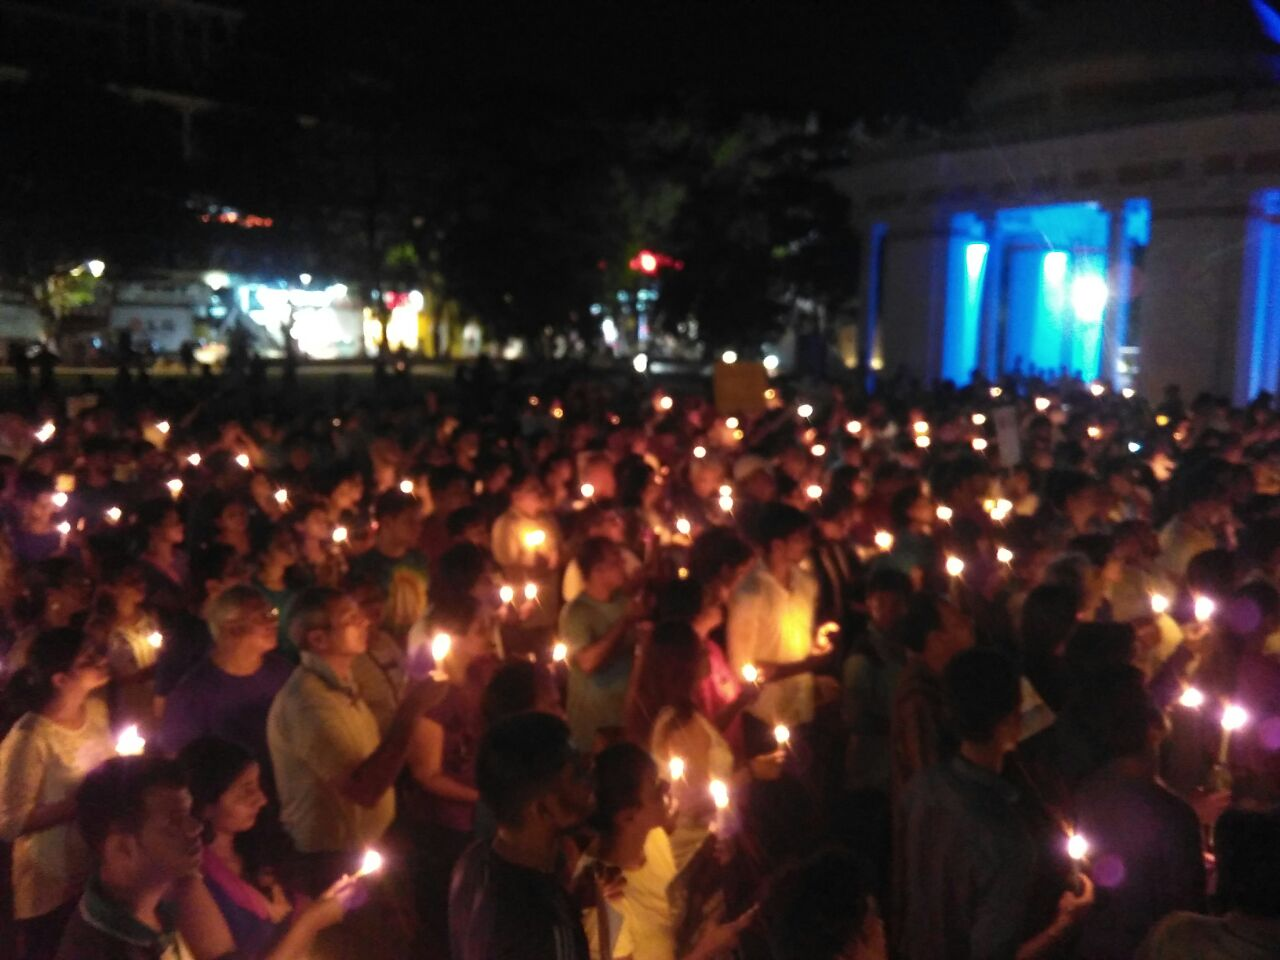 An estimated 2,0000 people gathered for a candlelight vigil in Azad Maidan in Goa's capital of Panjim. (Credit: Pamela D'Mello)